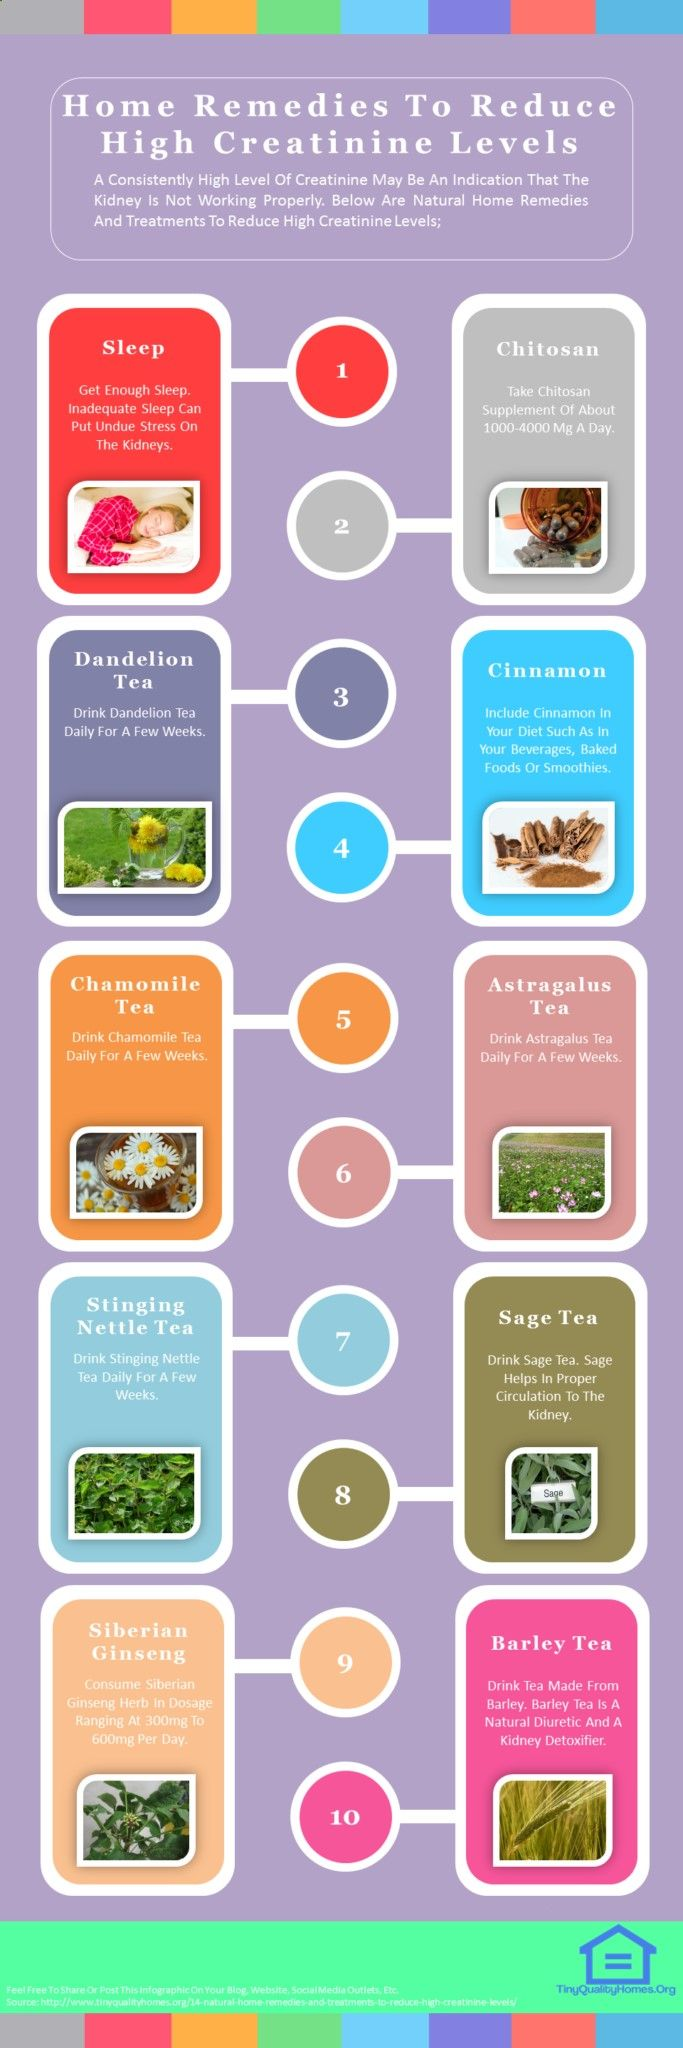 14 Natural Home Remedies And Treatments To Reduce High Creatinine Levels: This Guide Shows The Following; How To Reduce Creatinine Level Naturally, How To Lower Creatinine Levels With Diet, Foods To Lower Creatinine Levels, How To Lower Creatinine Levels With Herbs, How To Lower Creatinine Level Without Dialysis, How To Reduce Creatinine Level In Ayurvedic Treatment, How To Reduce Creatinine And Urea Level, How To Lower Creatinine Levels Mayo Clinic, Etc.